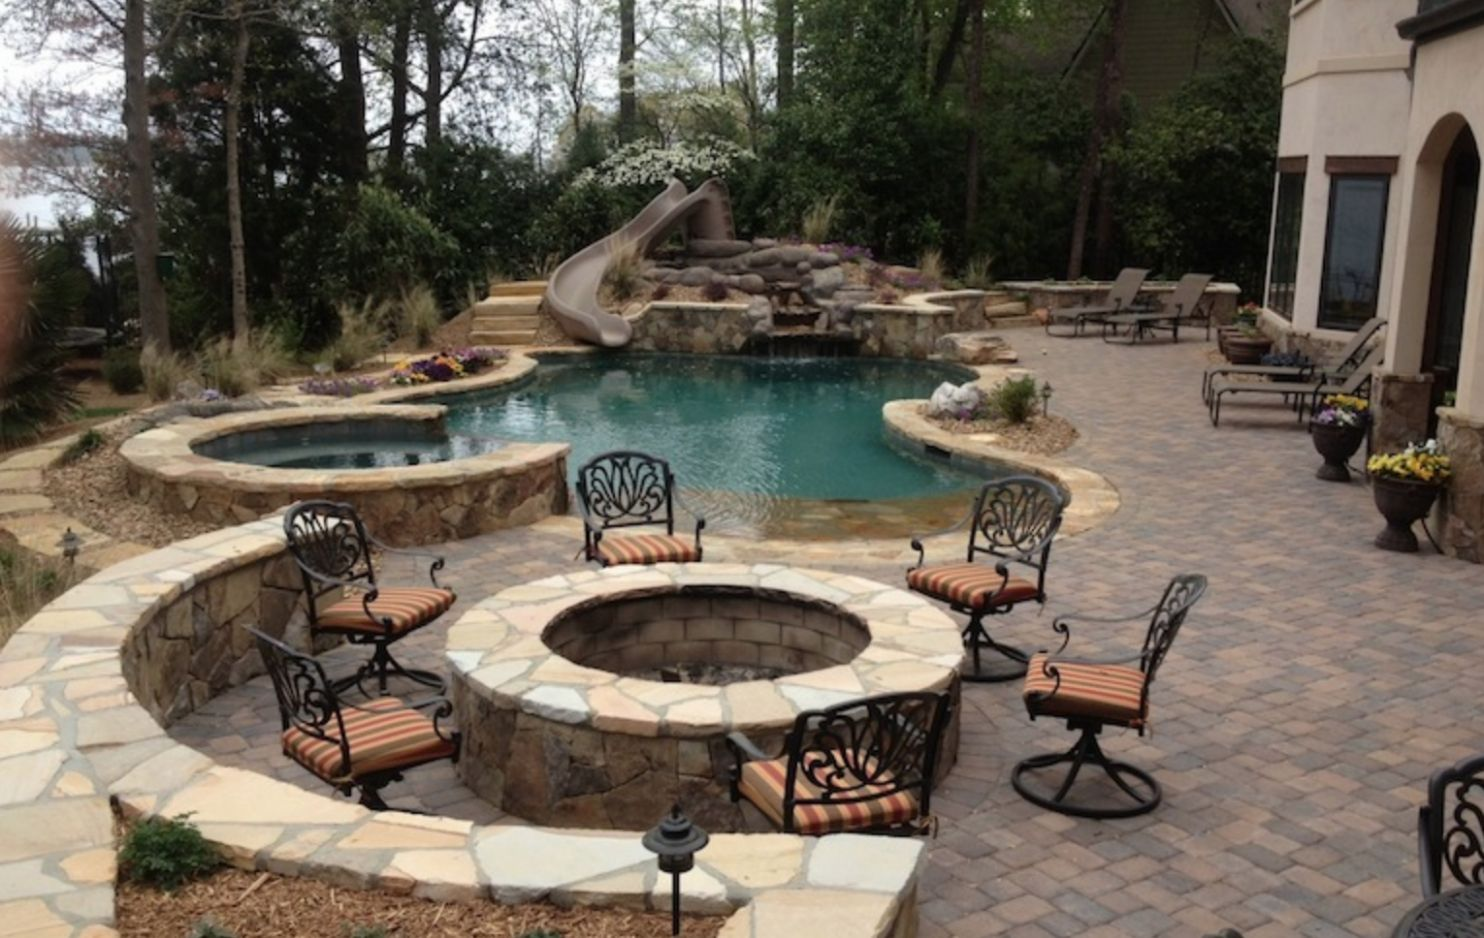 Pool Patios From Grill In Ground Patio Ideas On Home Designs Diy ...